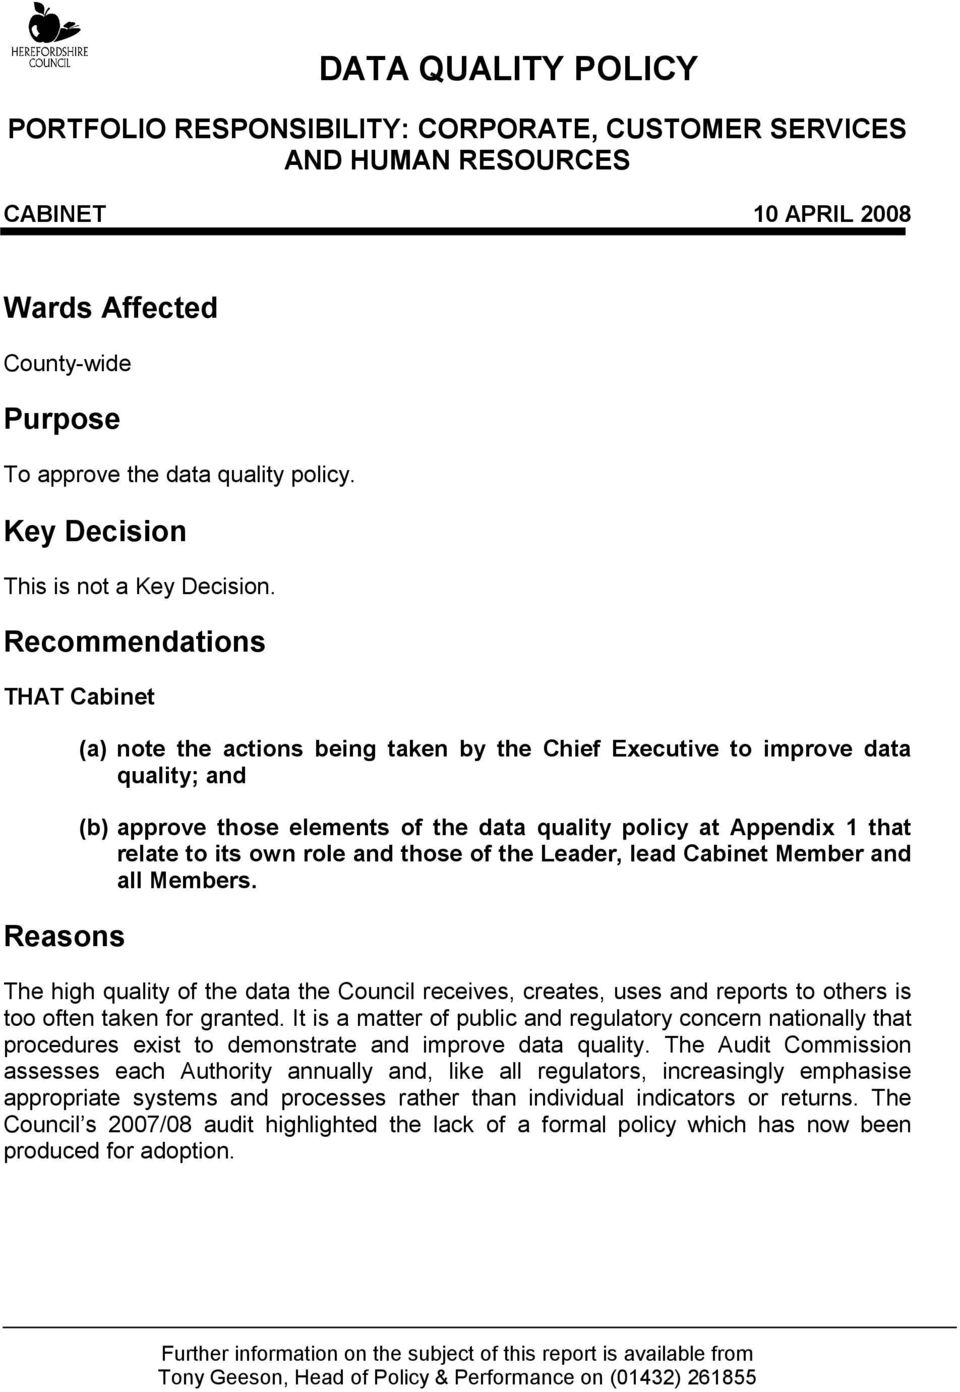 Recommendations THAT Cabinet Reasons (a) note the actions being taken by the Chief Executive to improve data quality; and (b) approve those elements of the data quality policy at Appendix 1 that